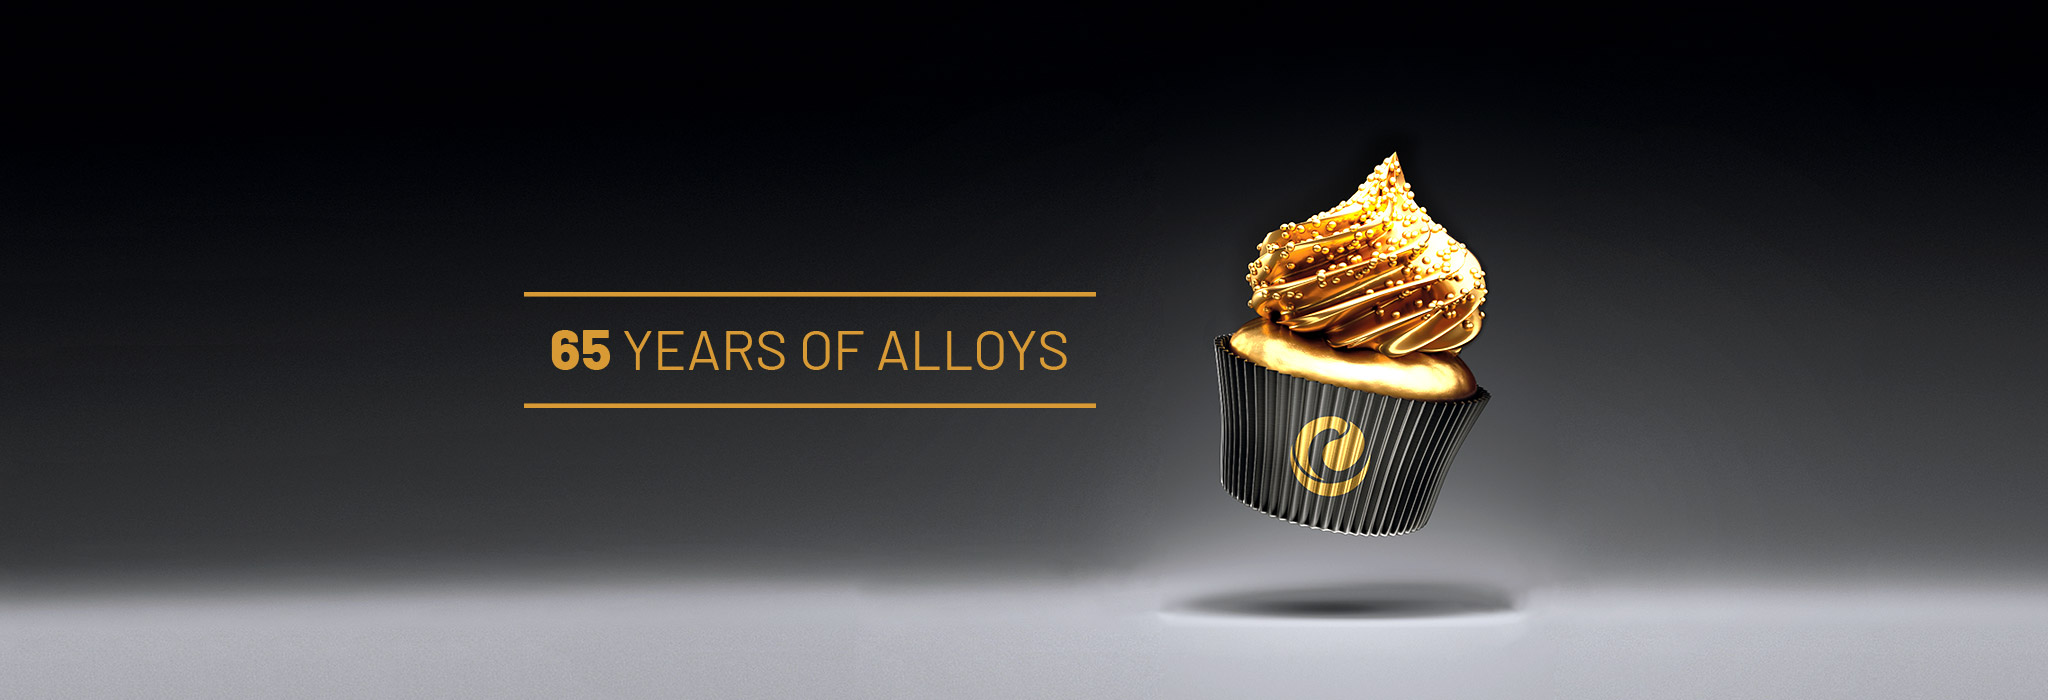 65 years of alloys